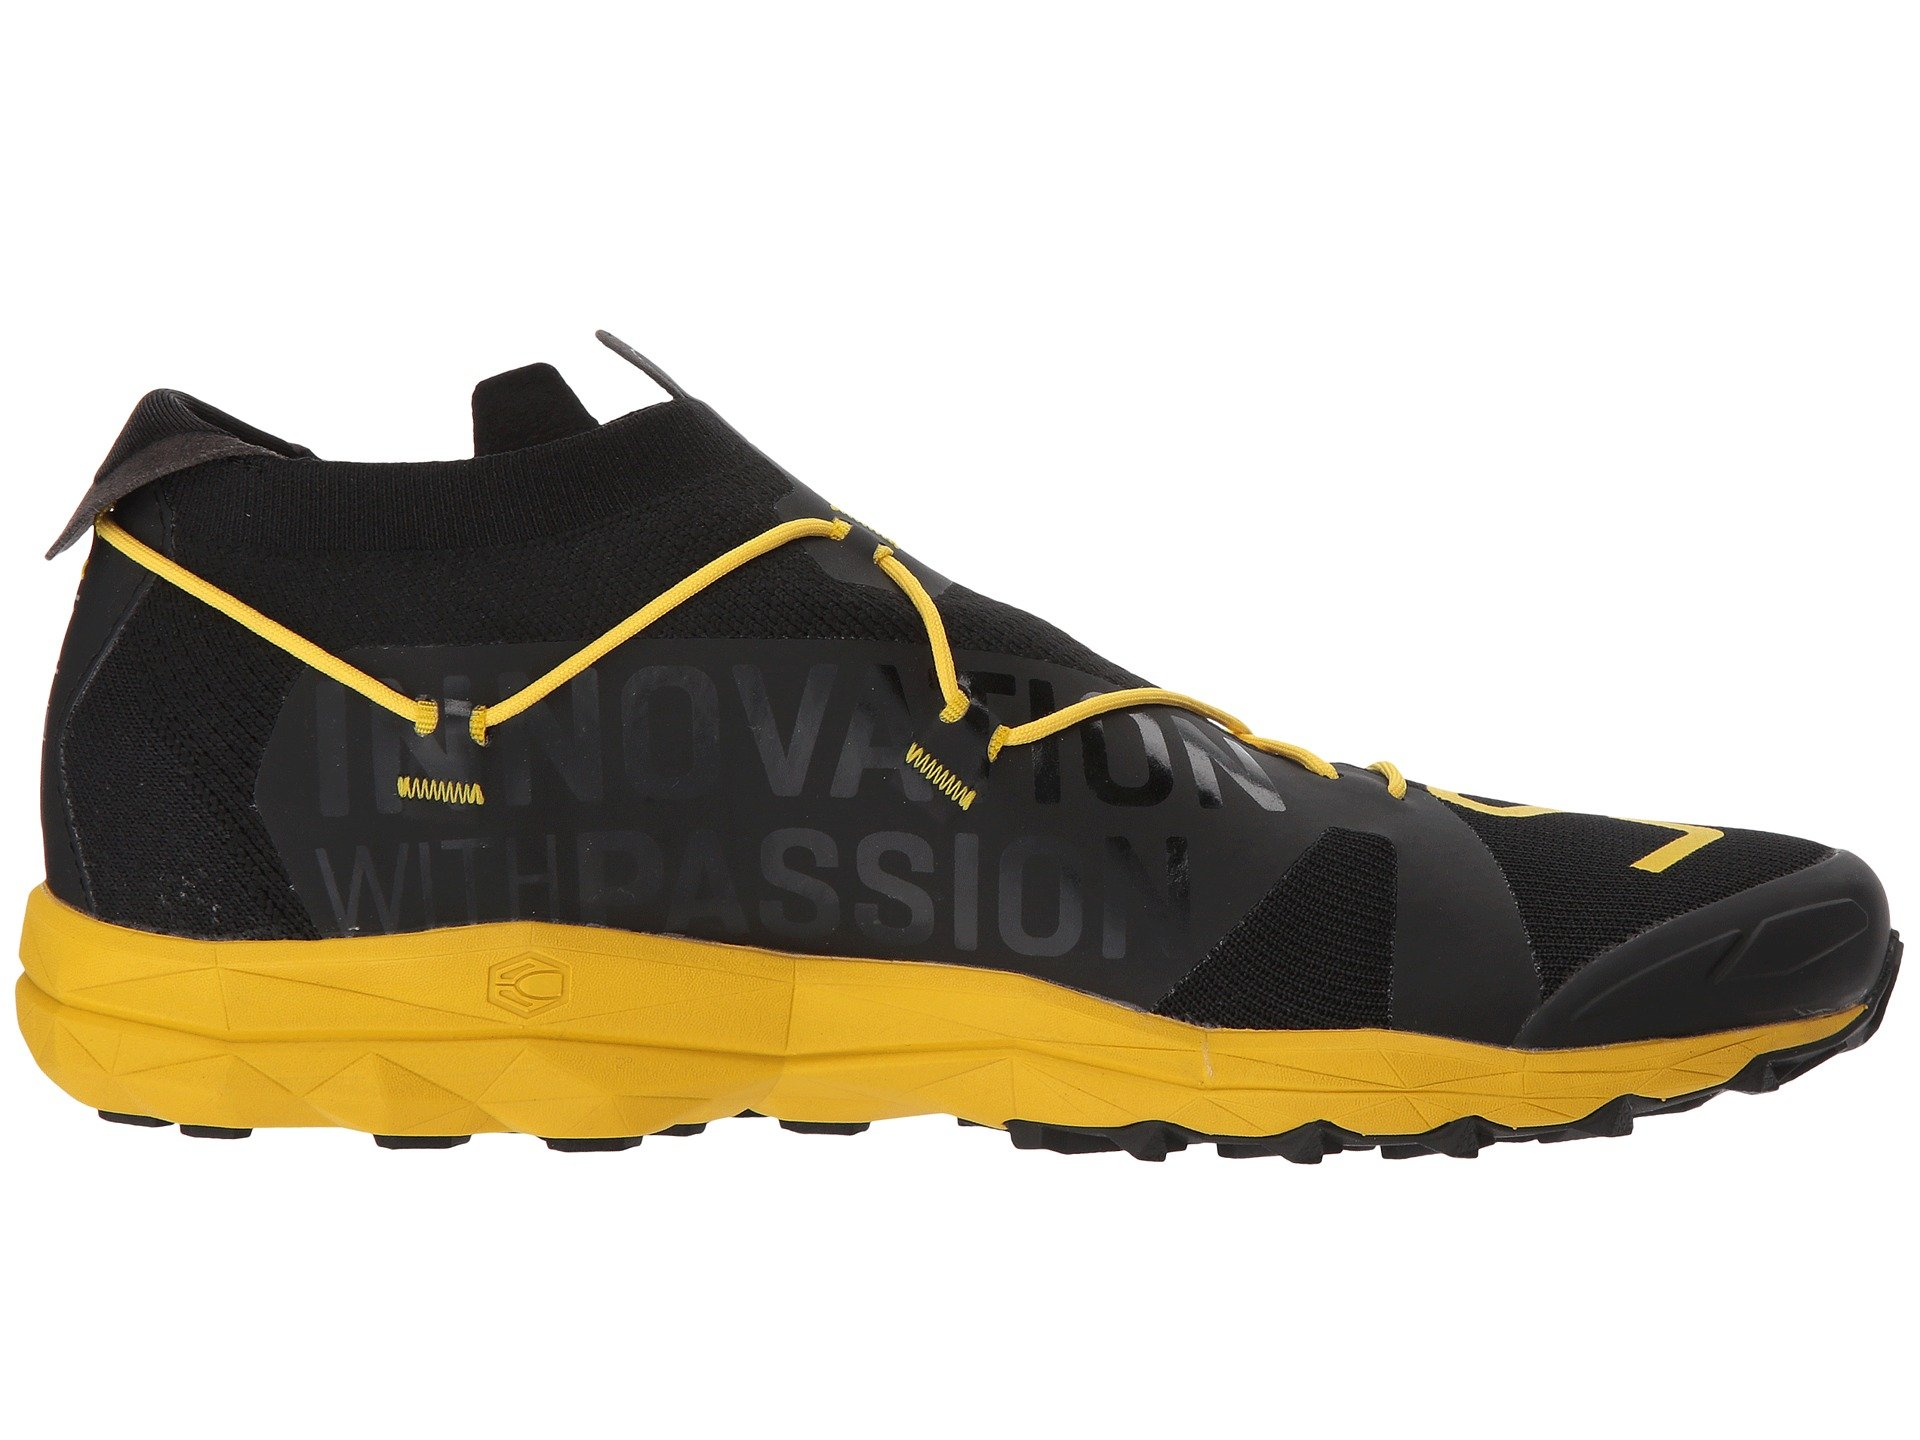 950d7b7d0cca Lightweight Running Shoes